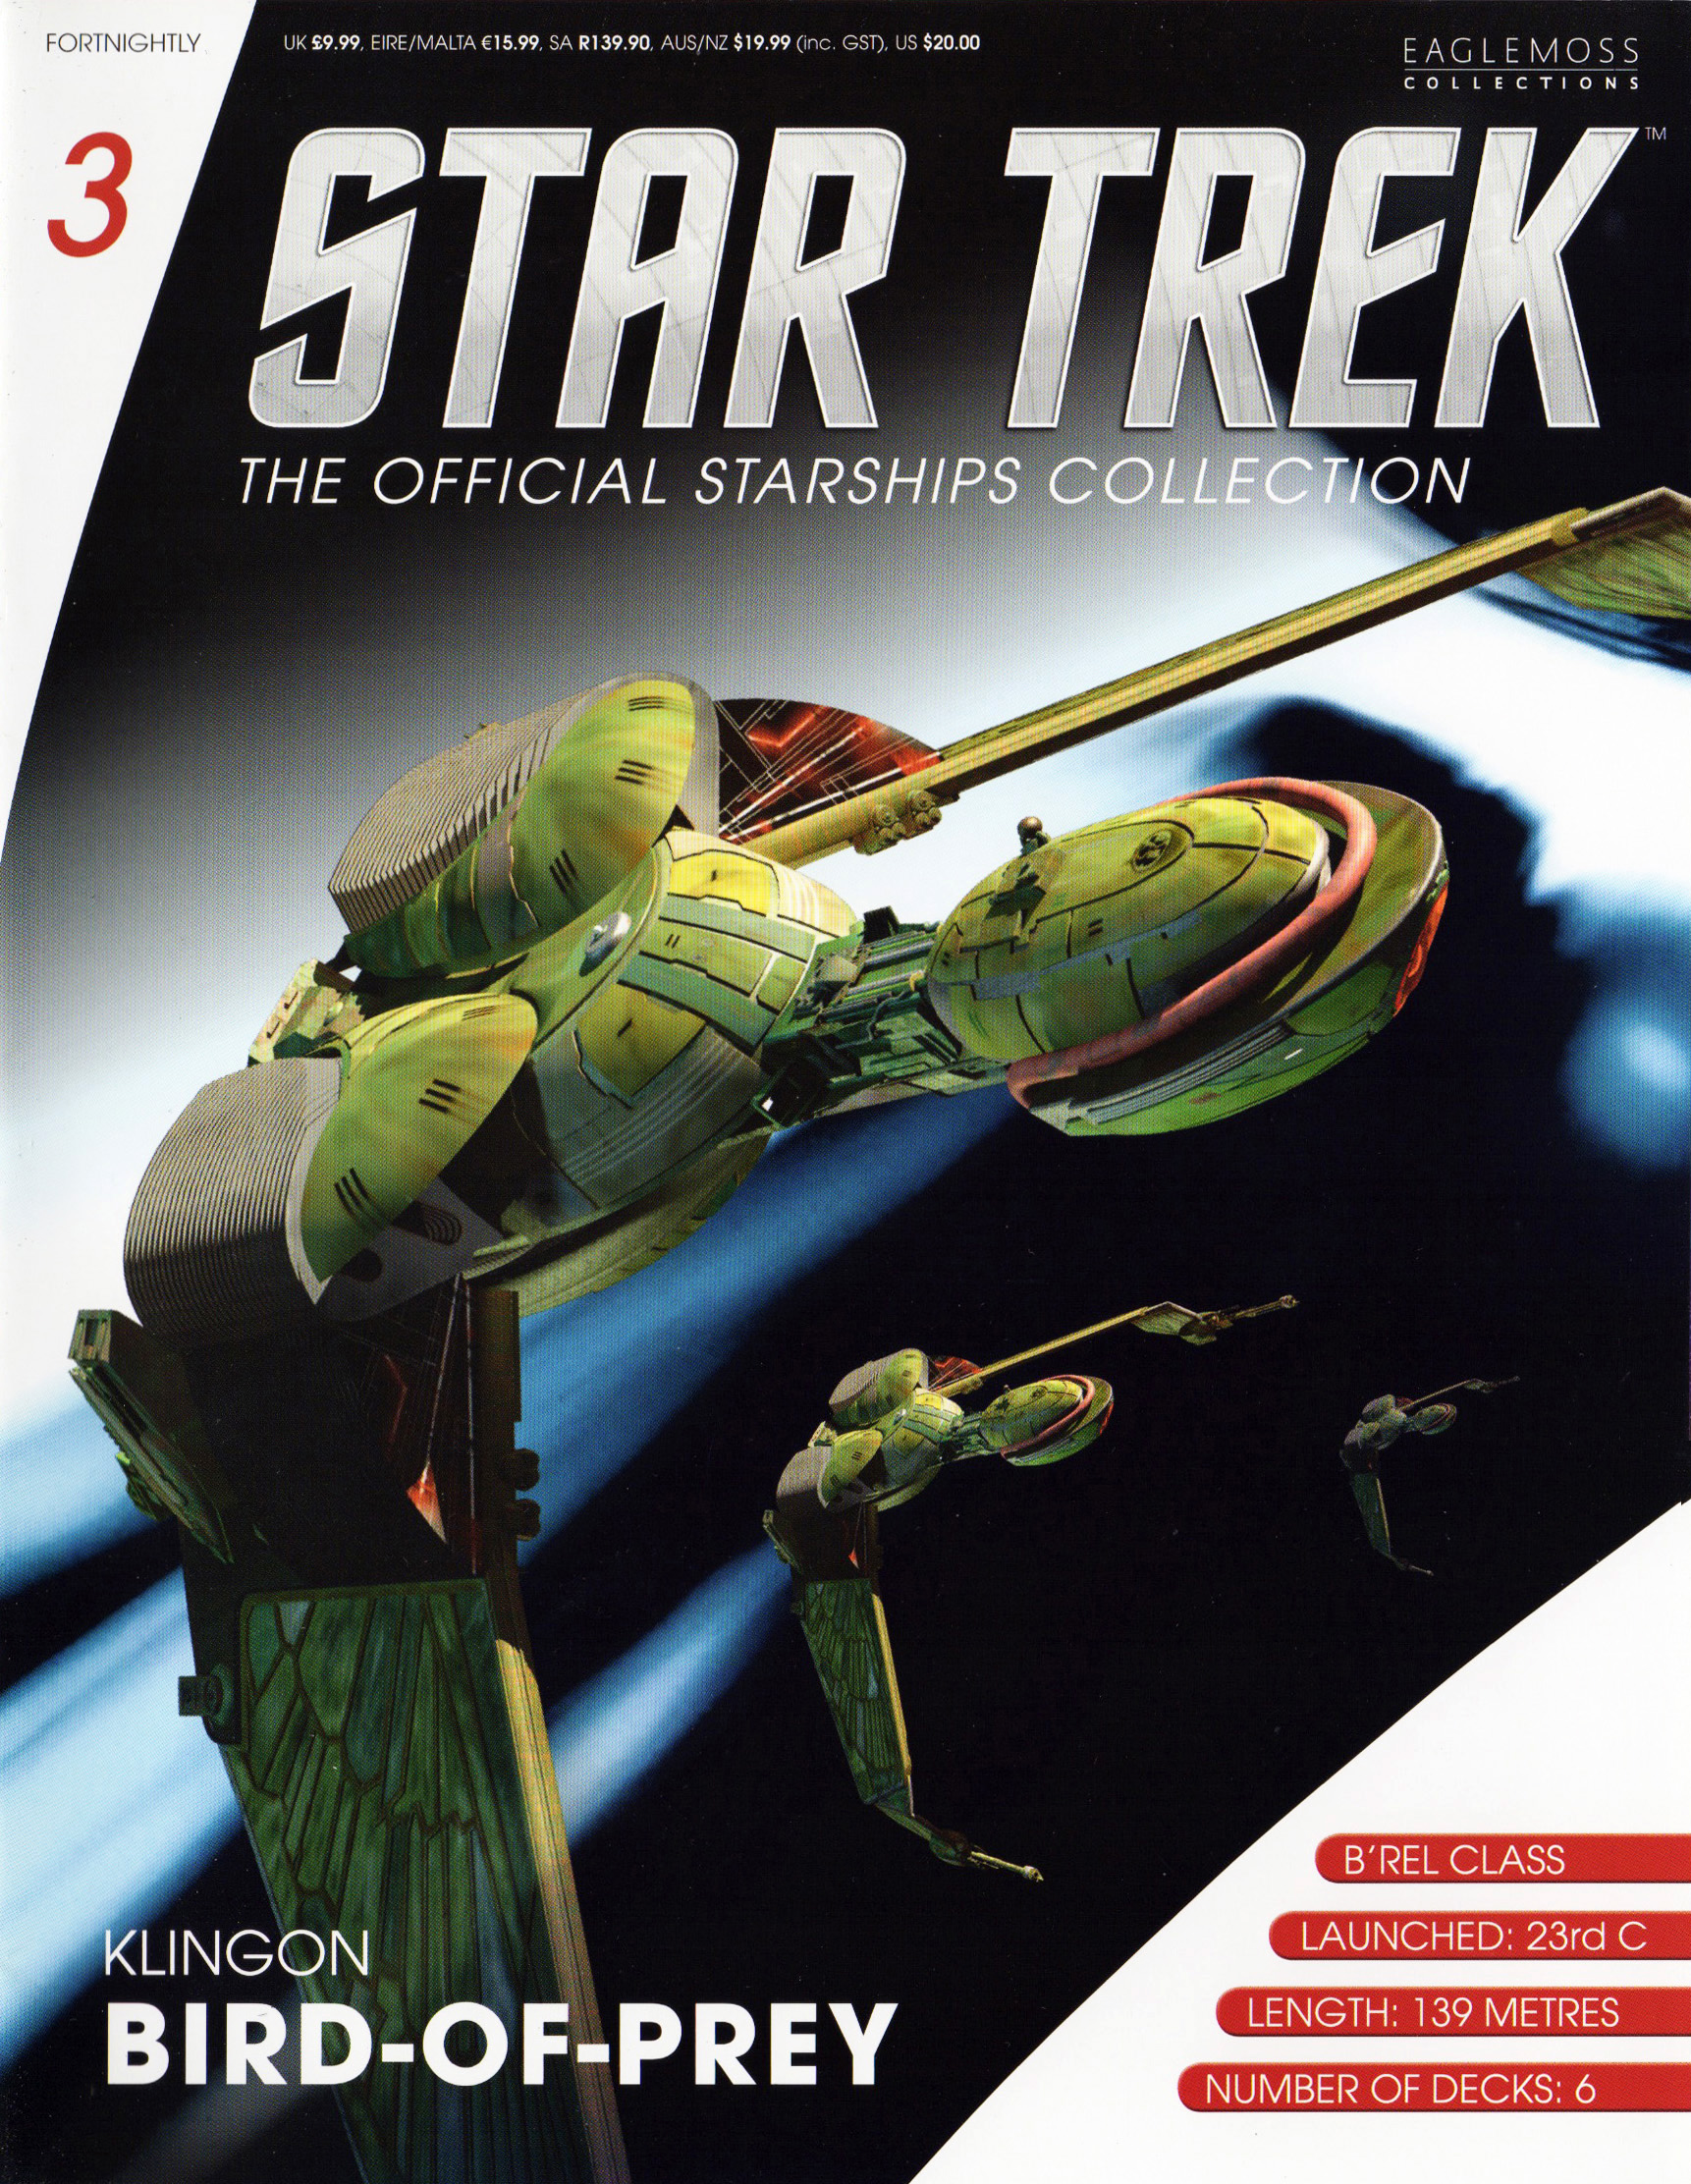 Eaglemoss Star Trek Starships Issue 3